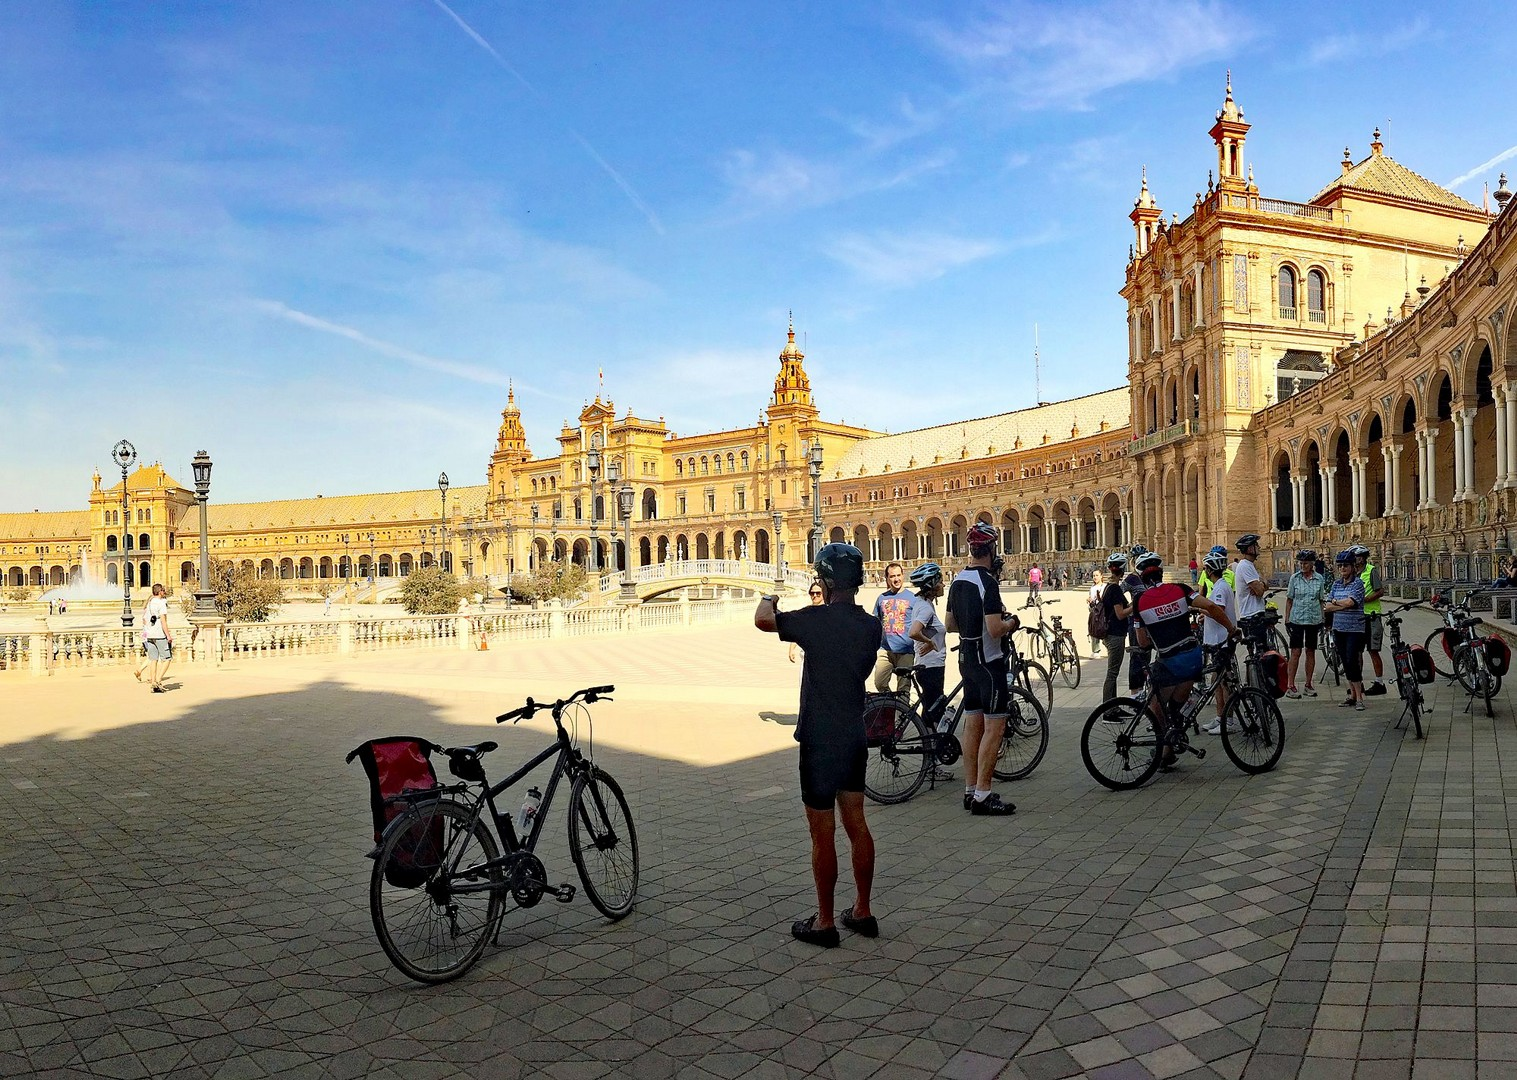 plaza-de-espana-seville-cycling-holiday-in-spain-granada-seville.jpg - Spain - Granada to Seville - Guided Leisure Cycling Holiday - Leisure Cycling